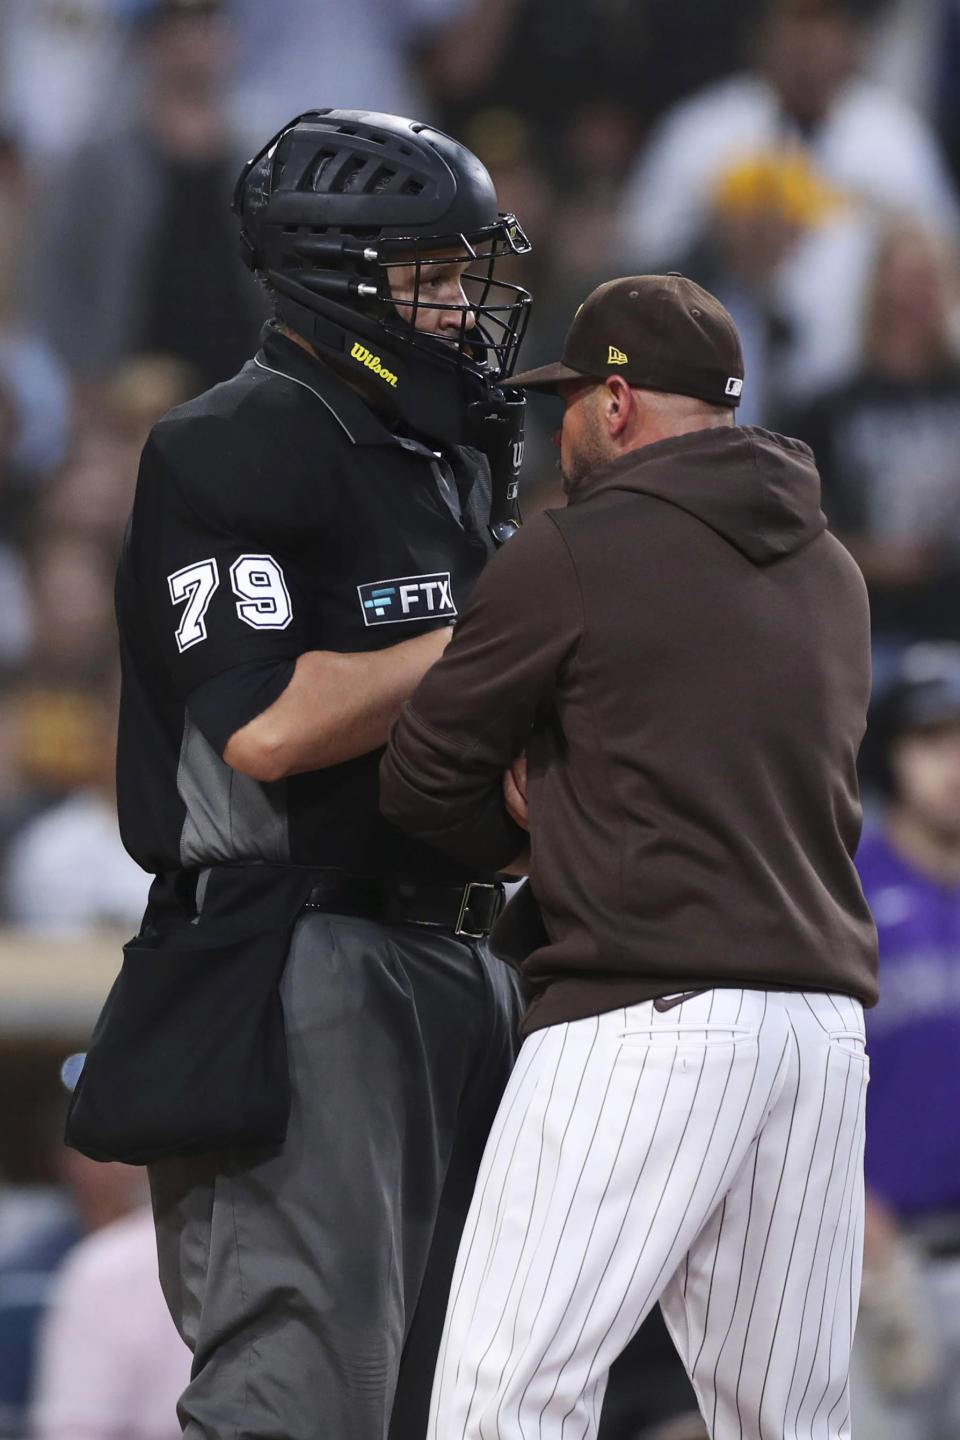 San Diego Padres manager Jayce Tingler, right, argues a called third strike with home plate umpire Manny Gonzalez (79) during the sixth inning of the team's baseball game against the Colorado Rockies on Saturday, July 31, 2021, in San Diego. Tingler was ejected. (AP Photo/Derrick Tuskan)